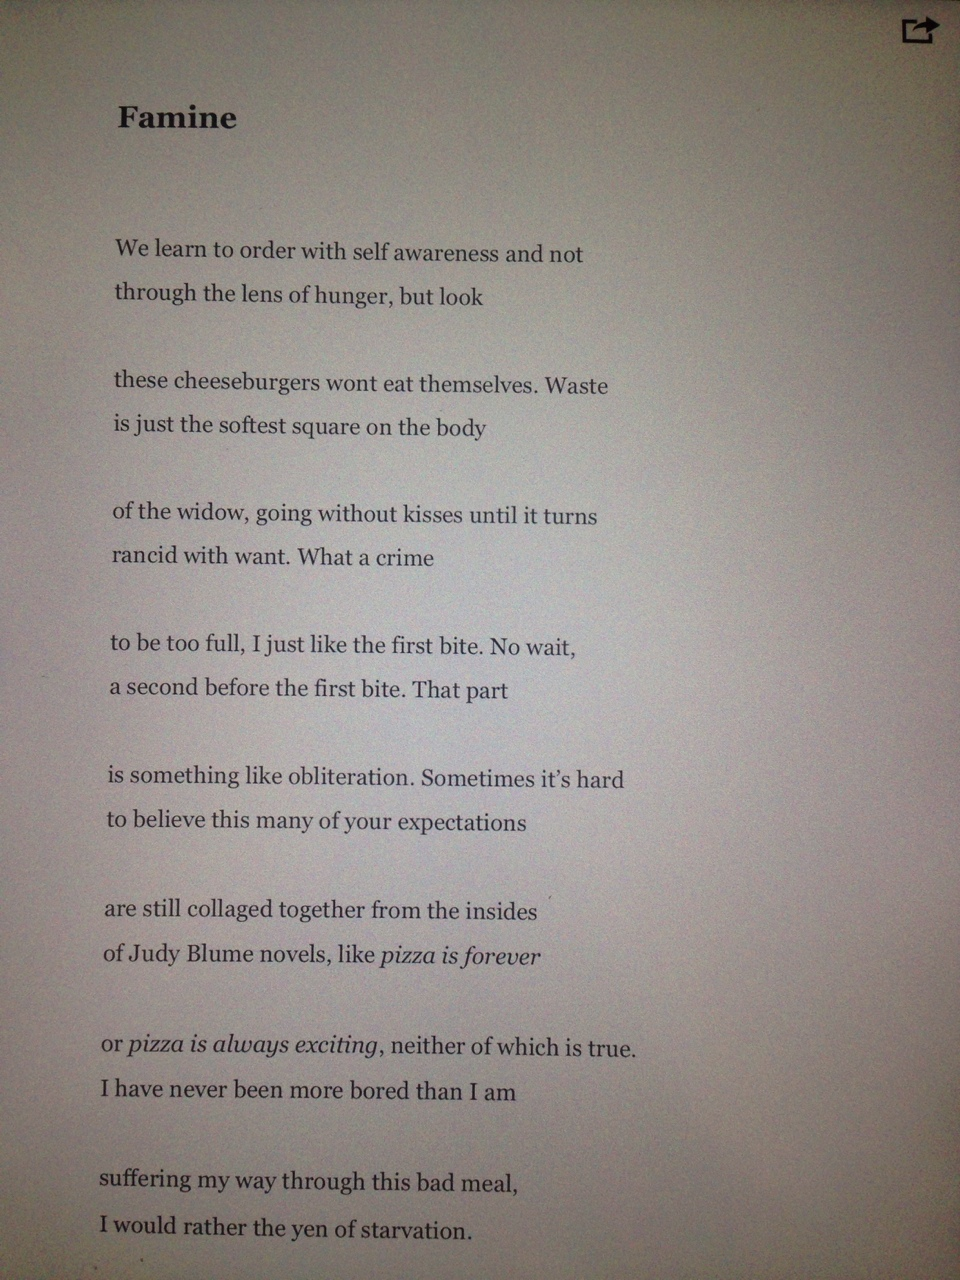 a photo of an ipad of a poem i wrote a little while ago (pizza is 4eva tho, I didn't mean that bit)